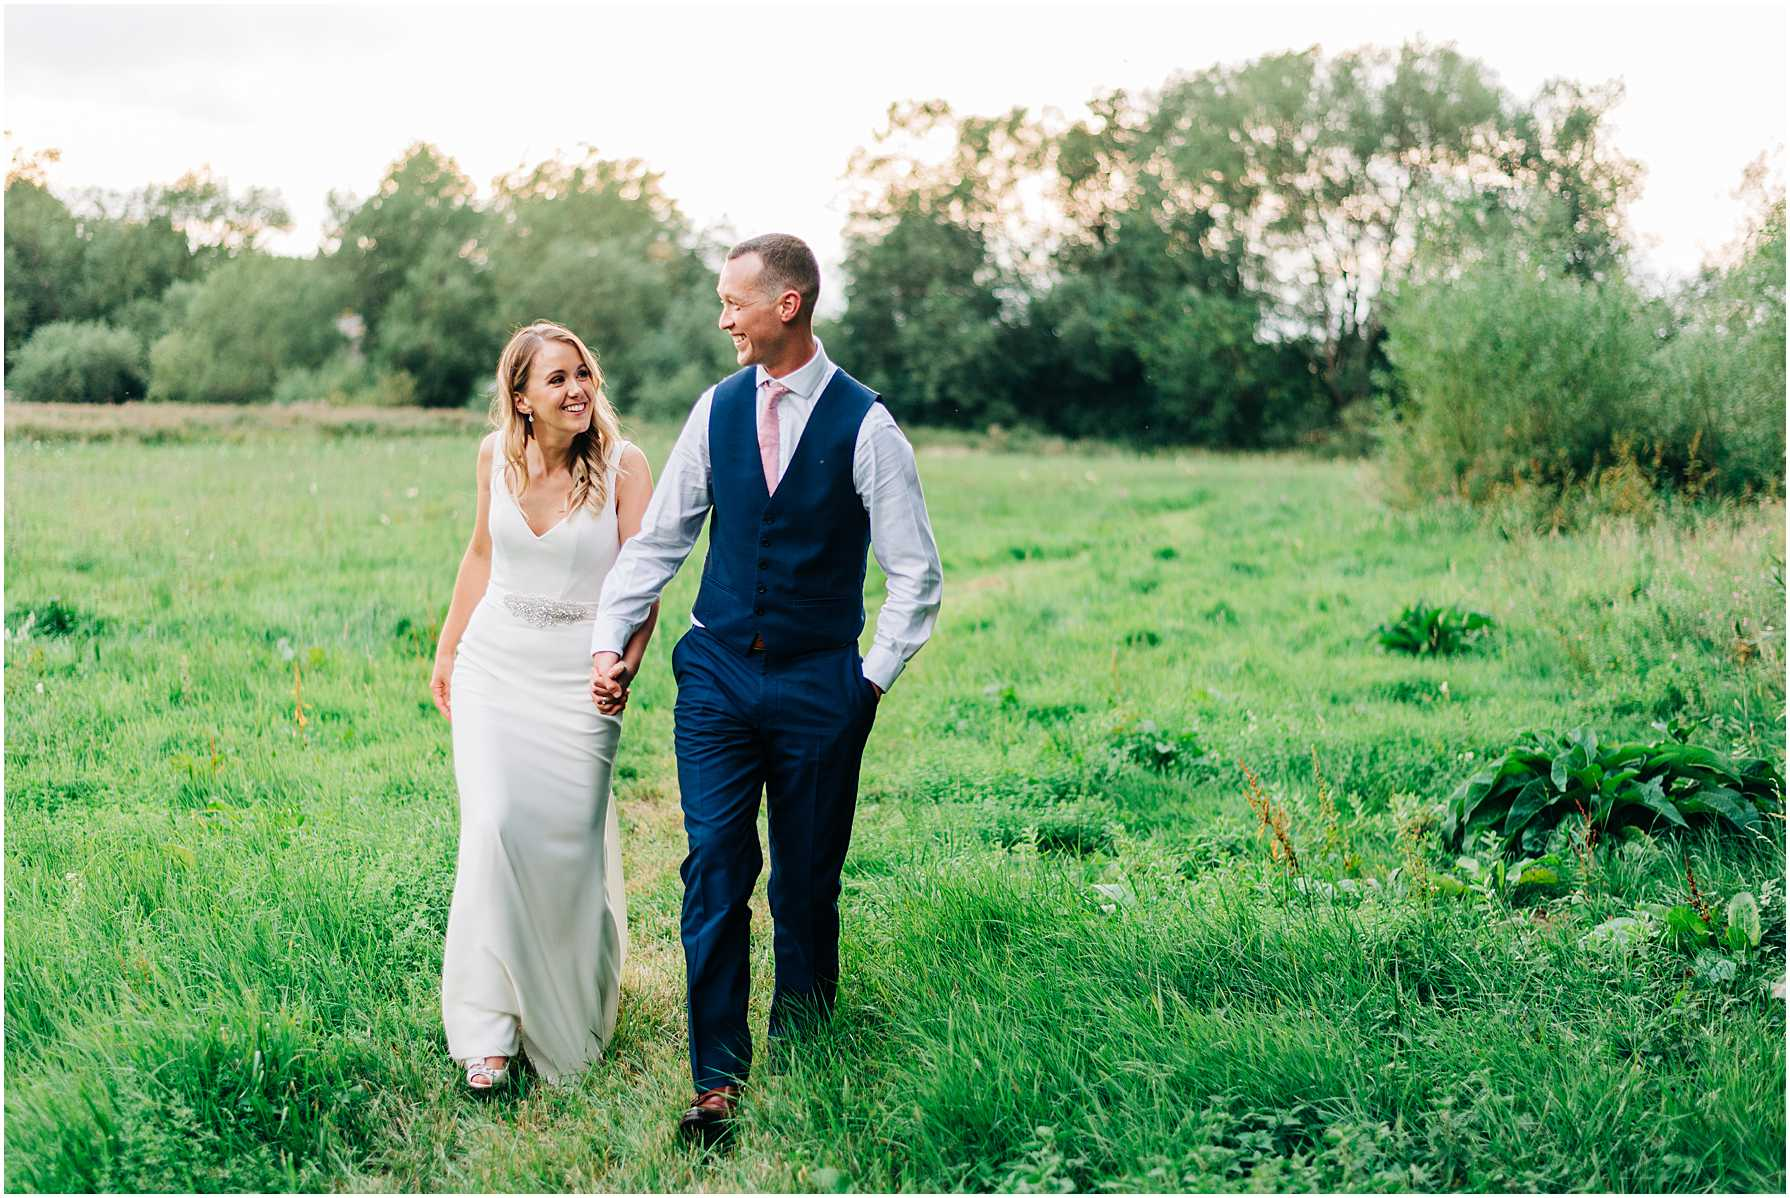 bride and groom walking hand in hand in a field as the sun sets behind them